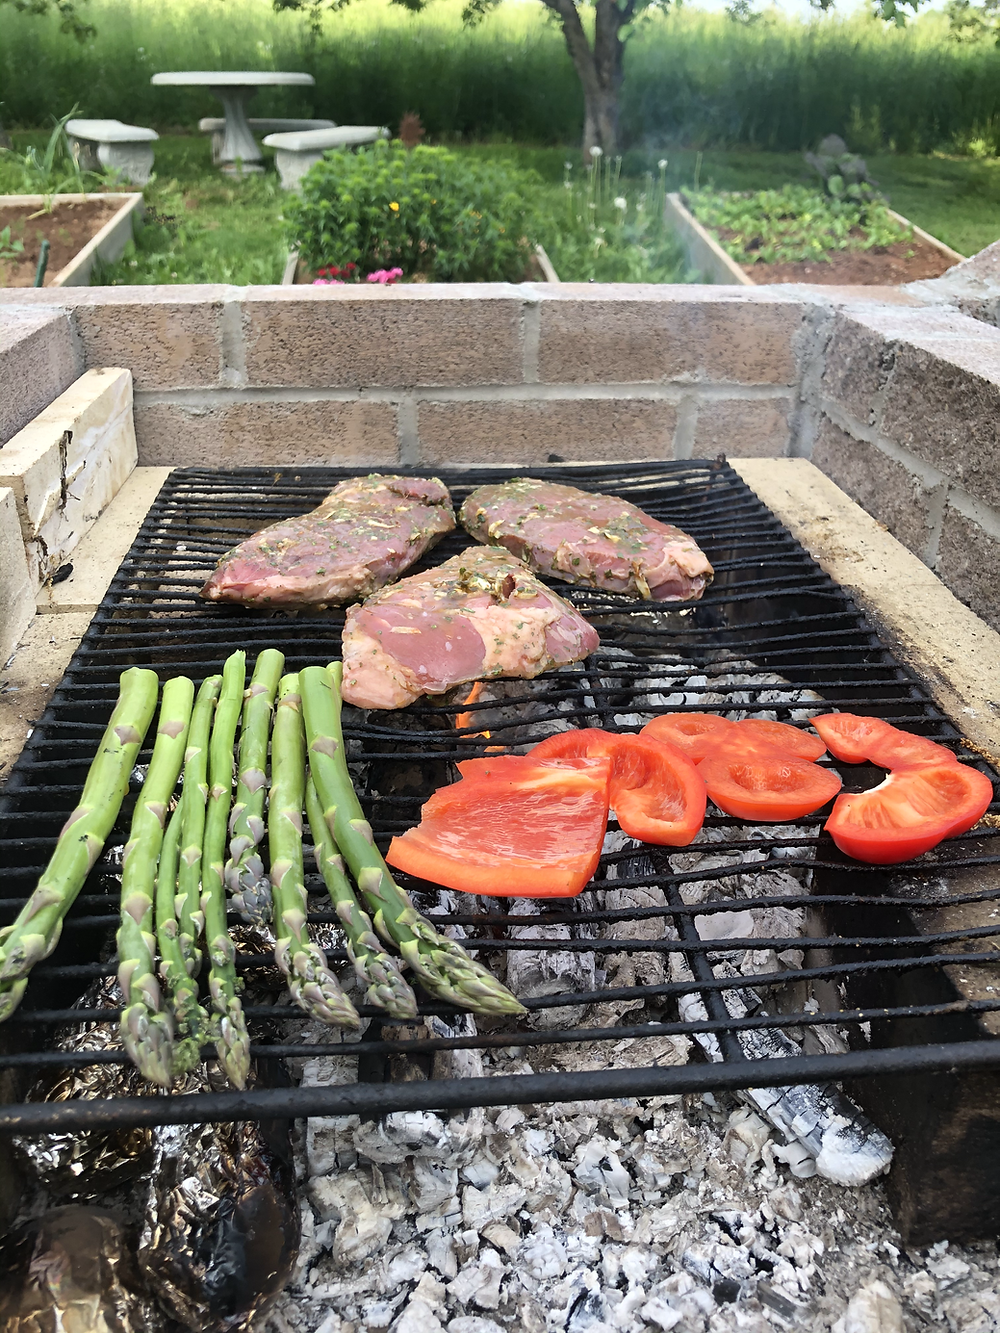 Grilling Over and Open Fire